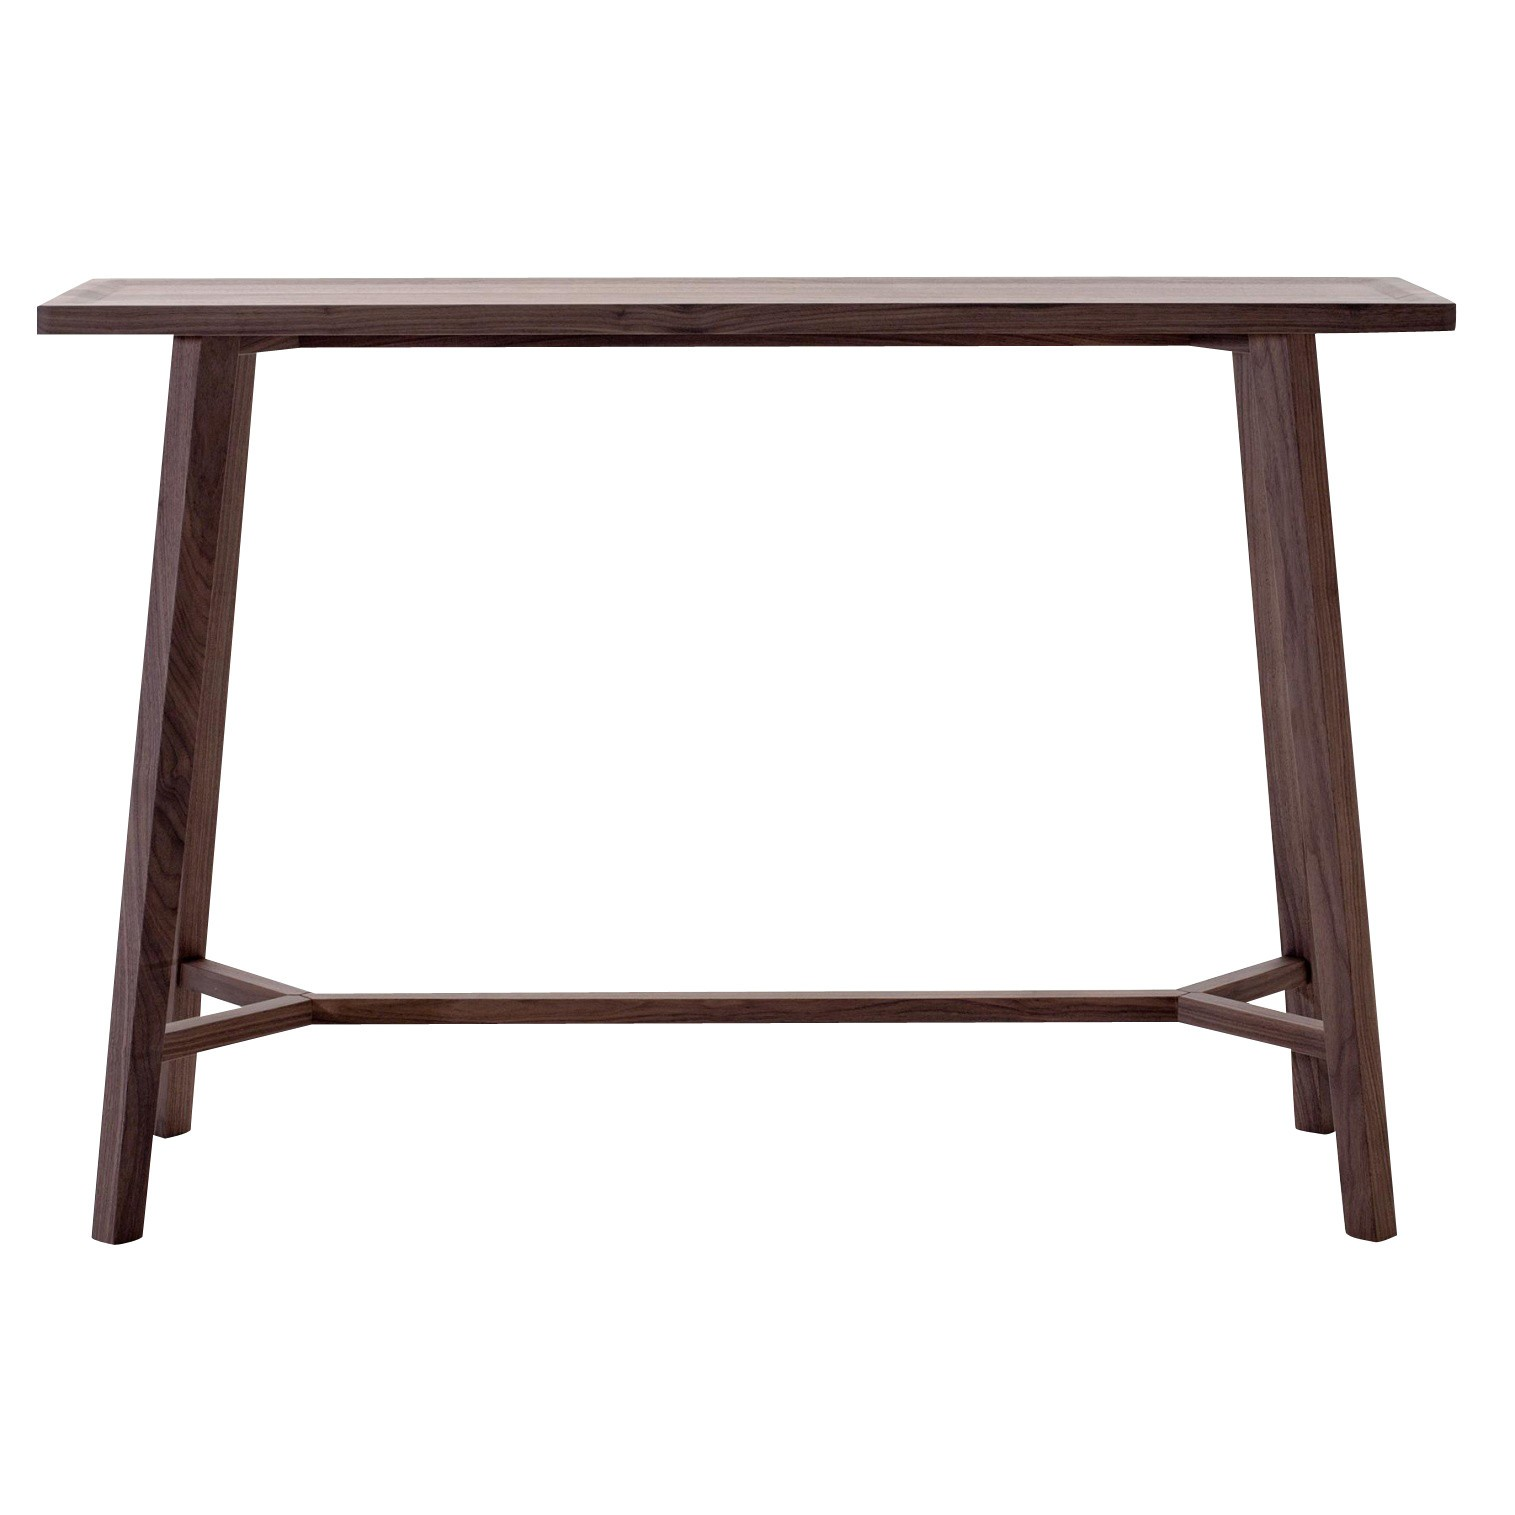 Table Roulante Jardin Nouveau Gray 61 Console Of 32 Best Of Table Roulante Jardin